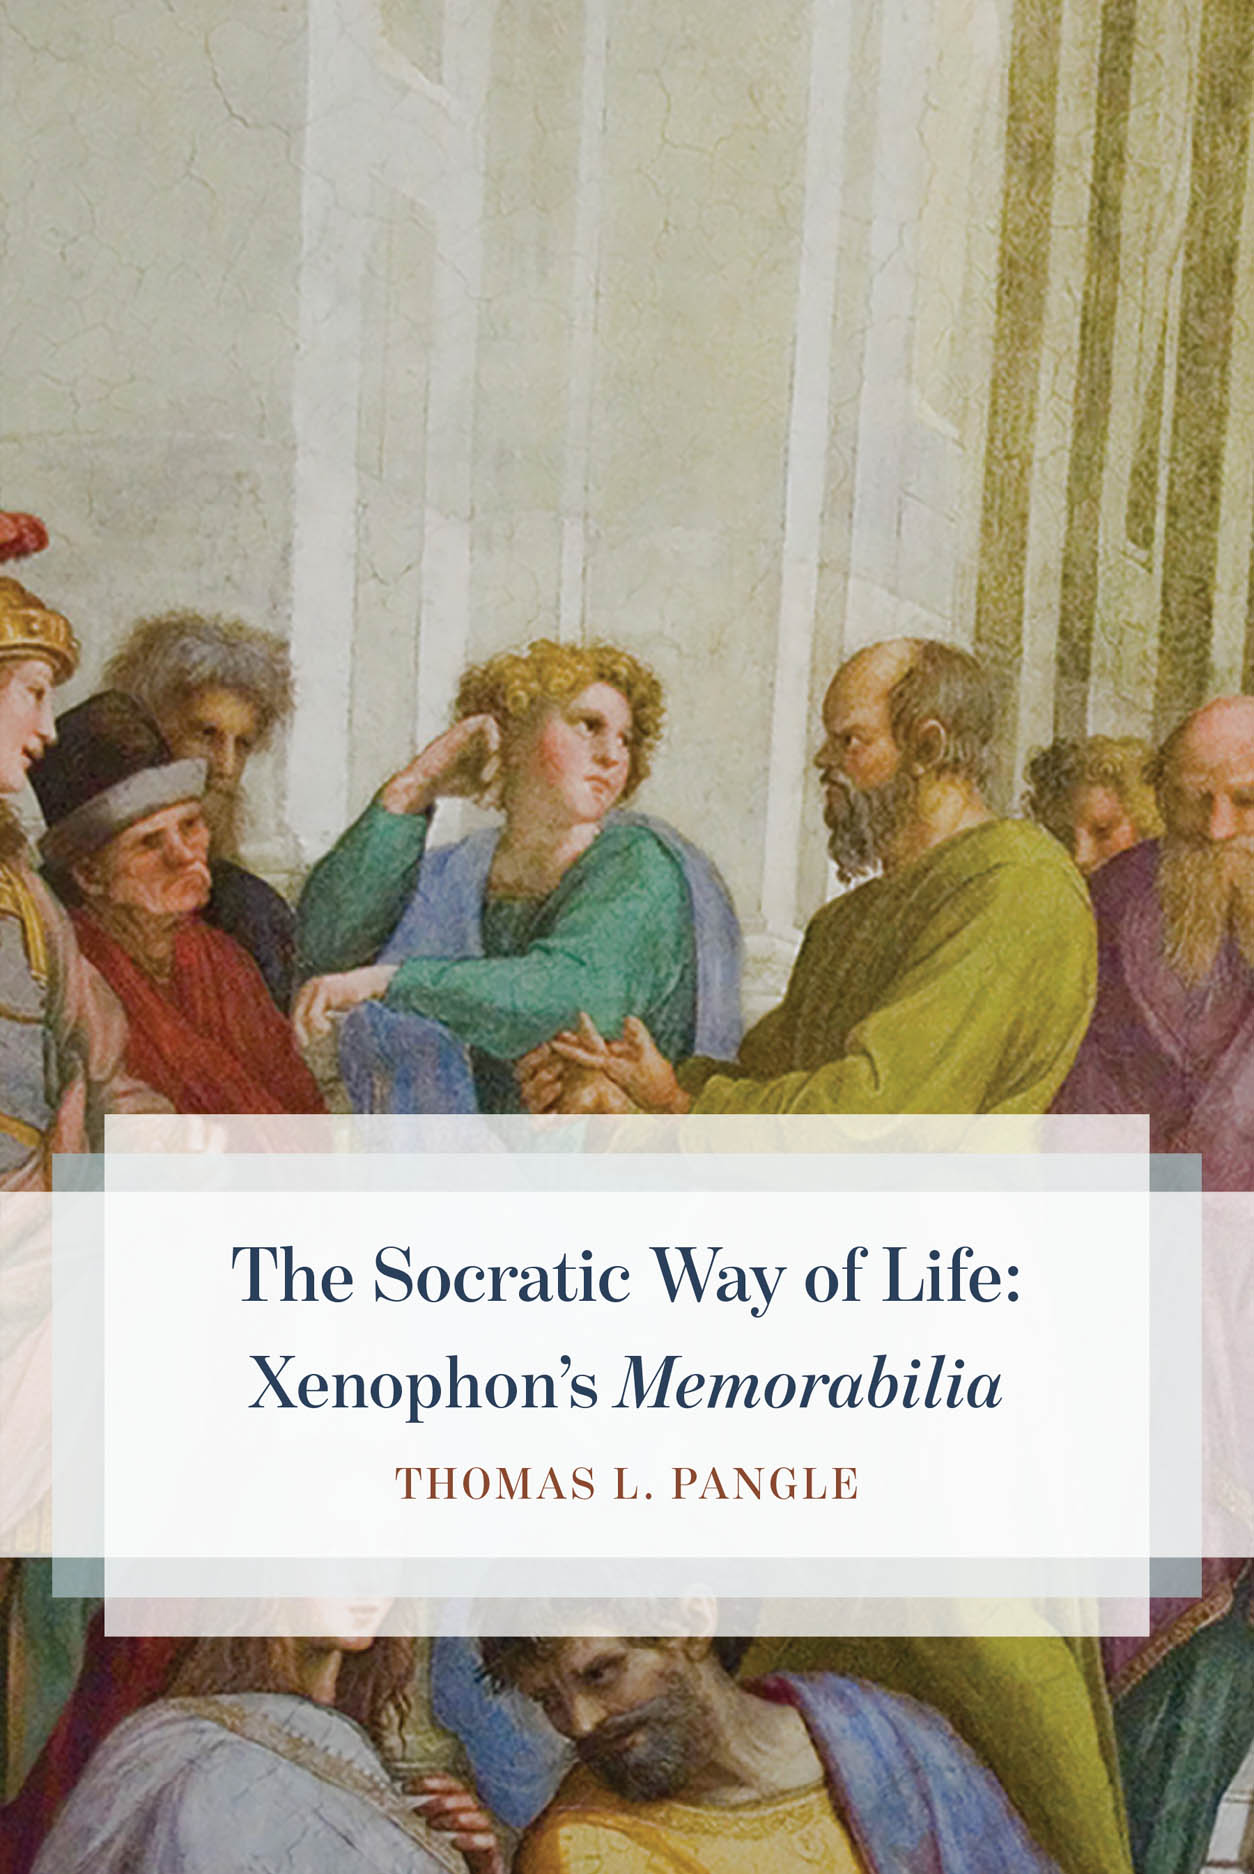 The Socratic Way of Life